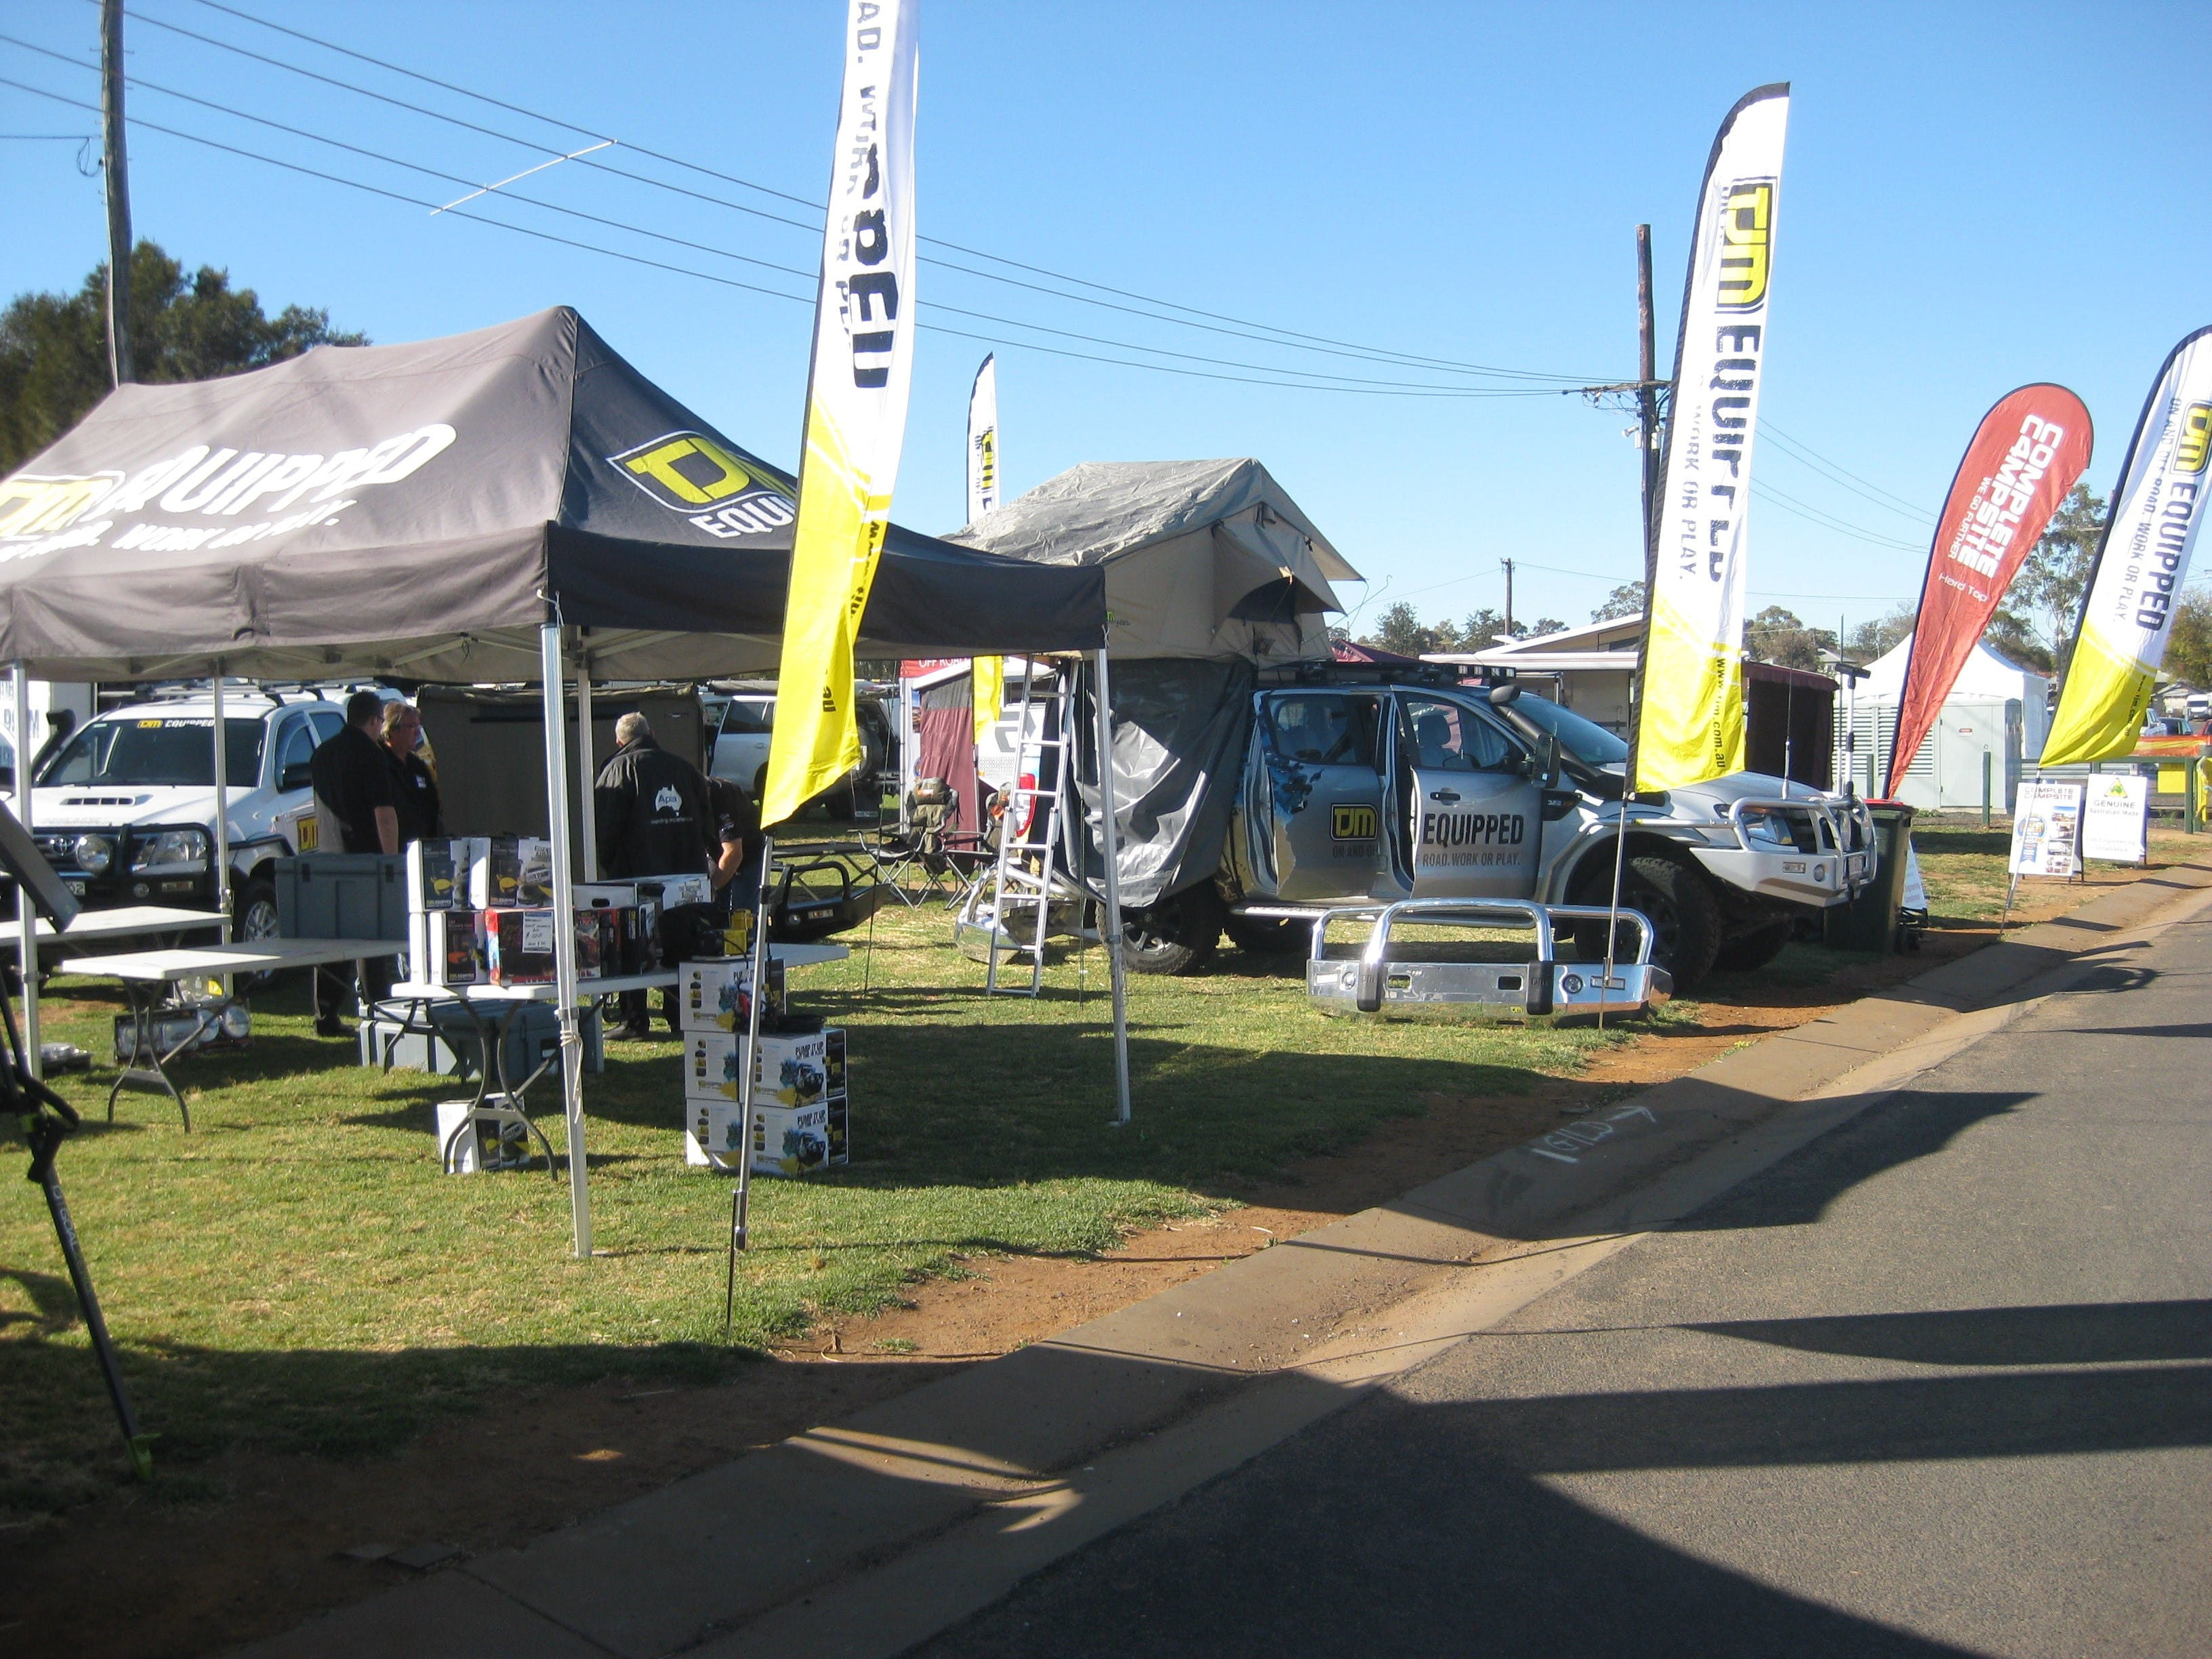 Orana Caravan Camping 4WD Fish and Boat Show - Accommodation Nelson Bay